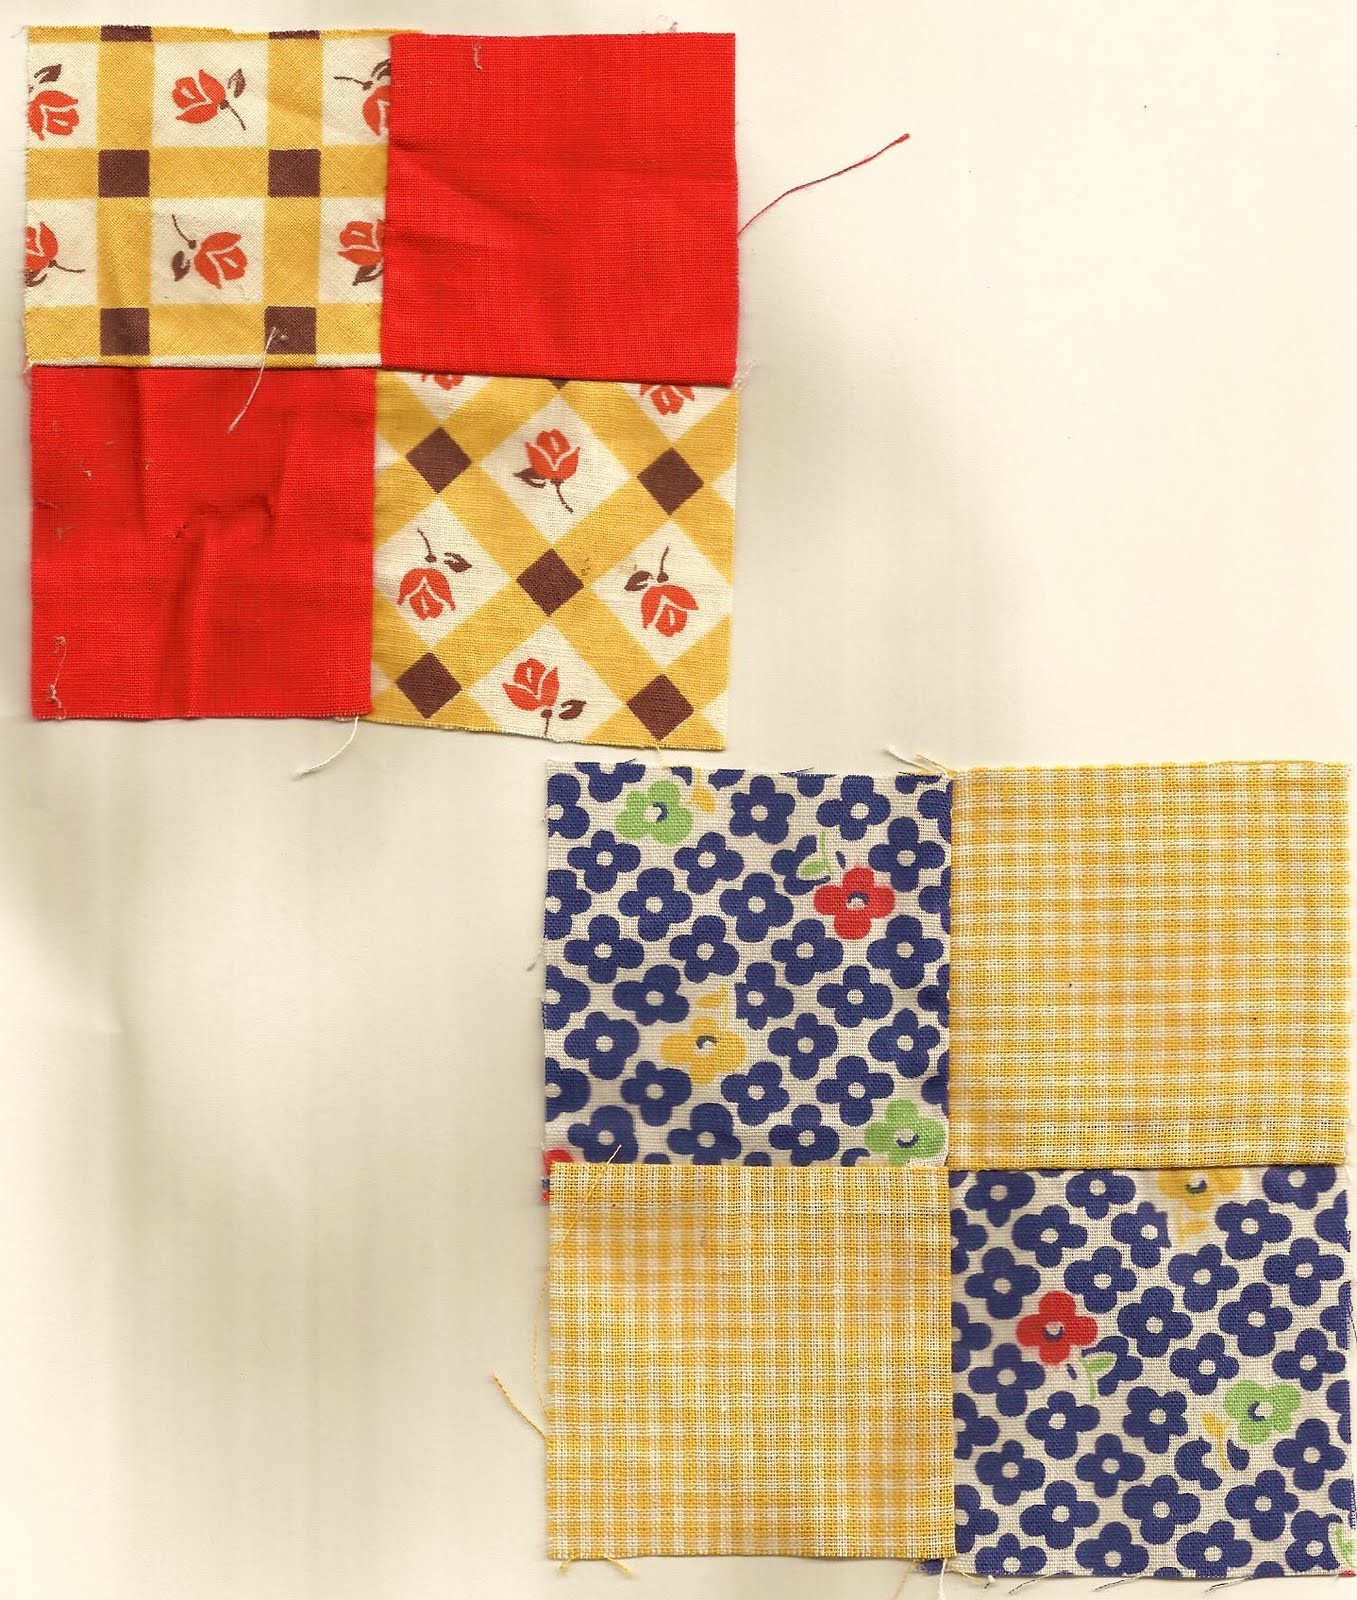 The Civil War Quilter: Blocks Galore!